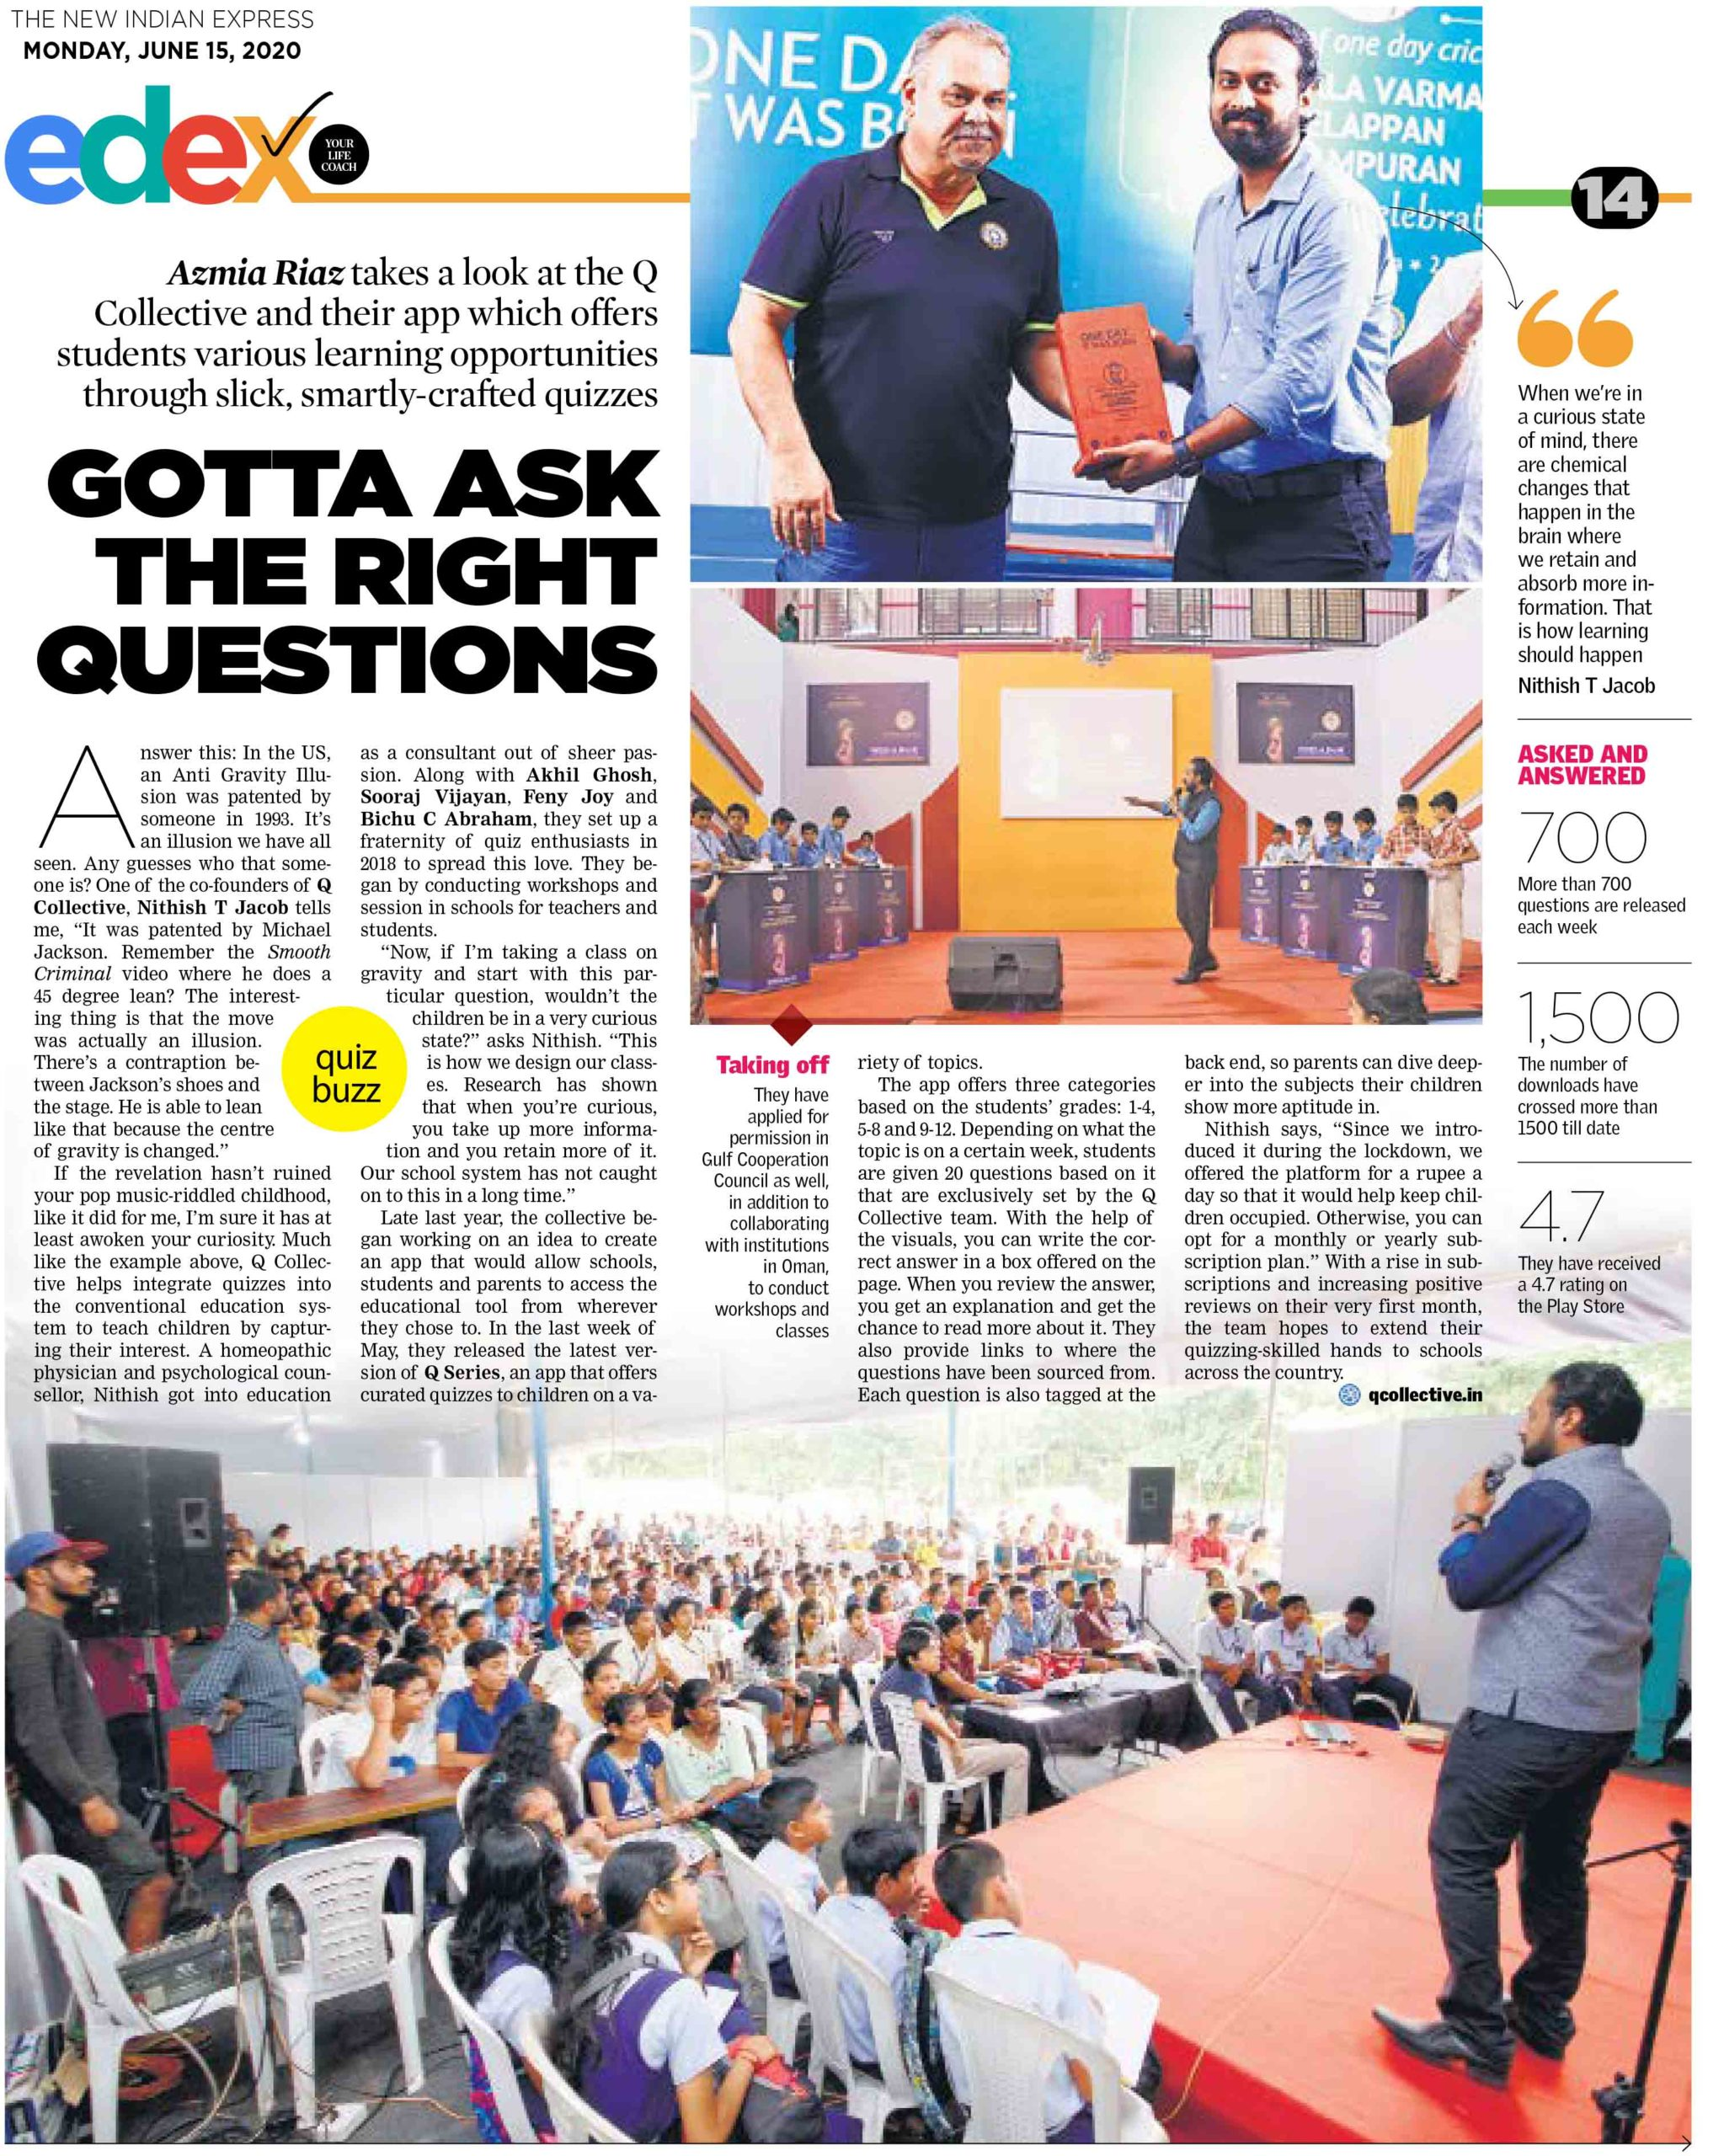 Gotta ask the right questions – The New Indian Express, Edex June 15 2020